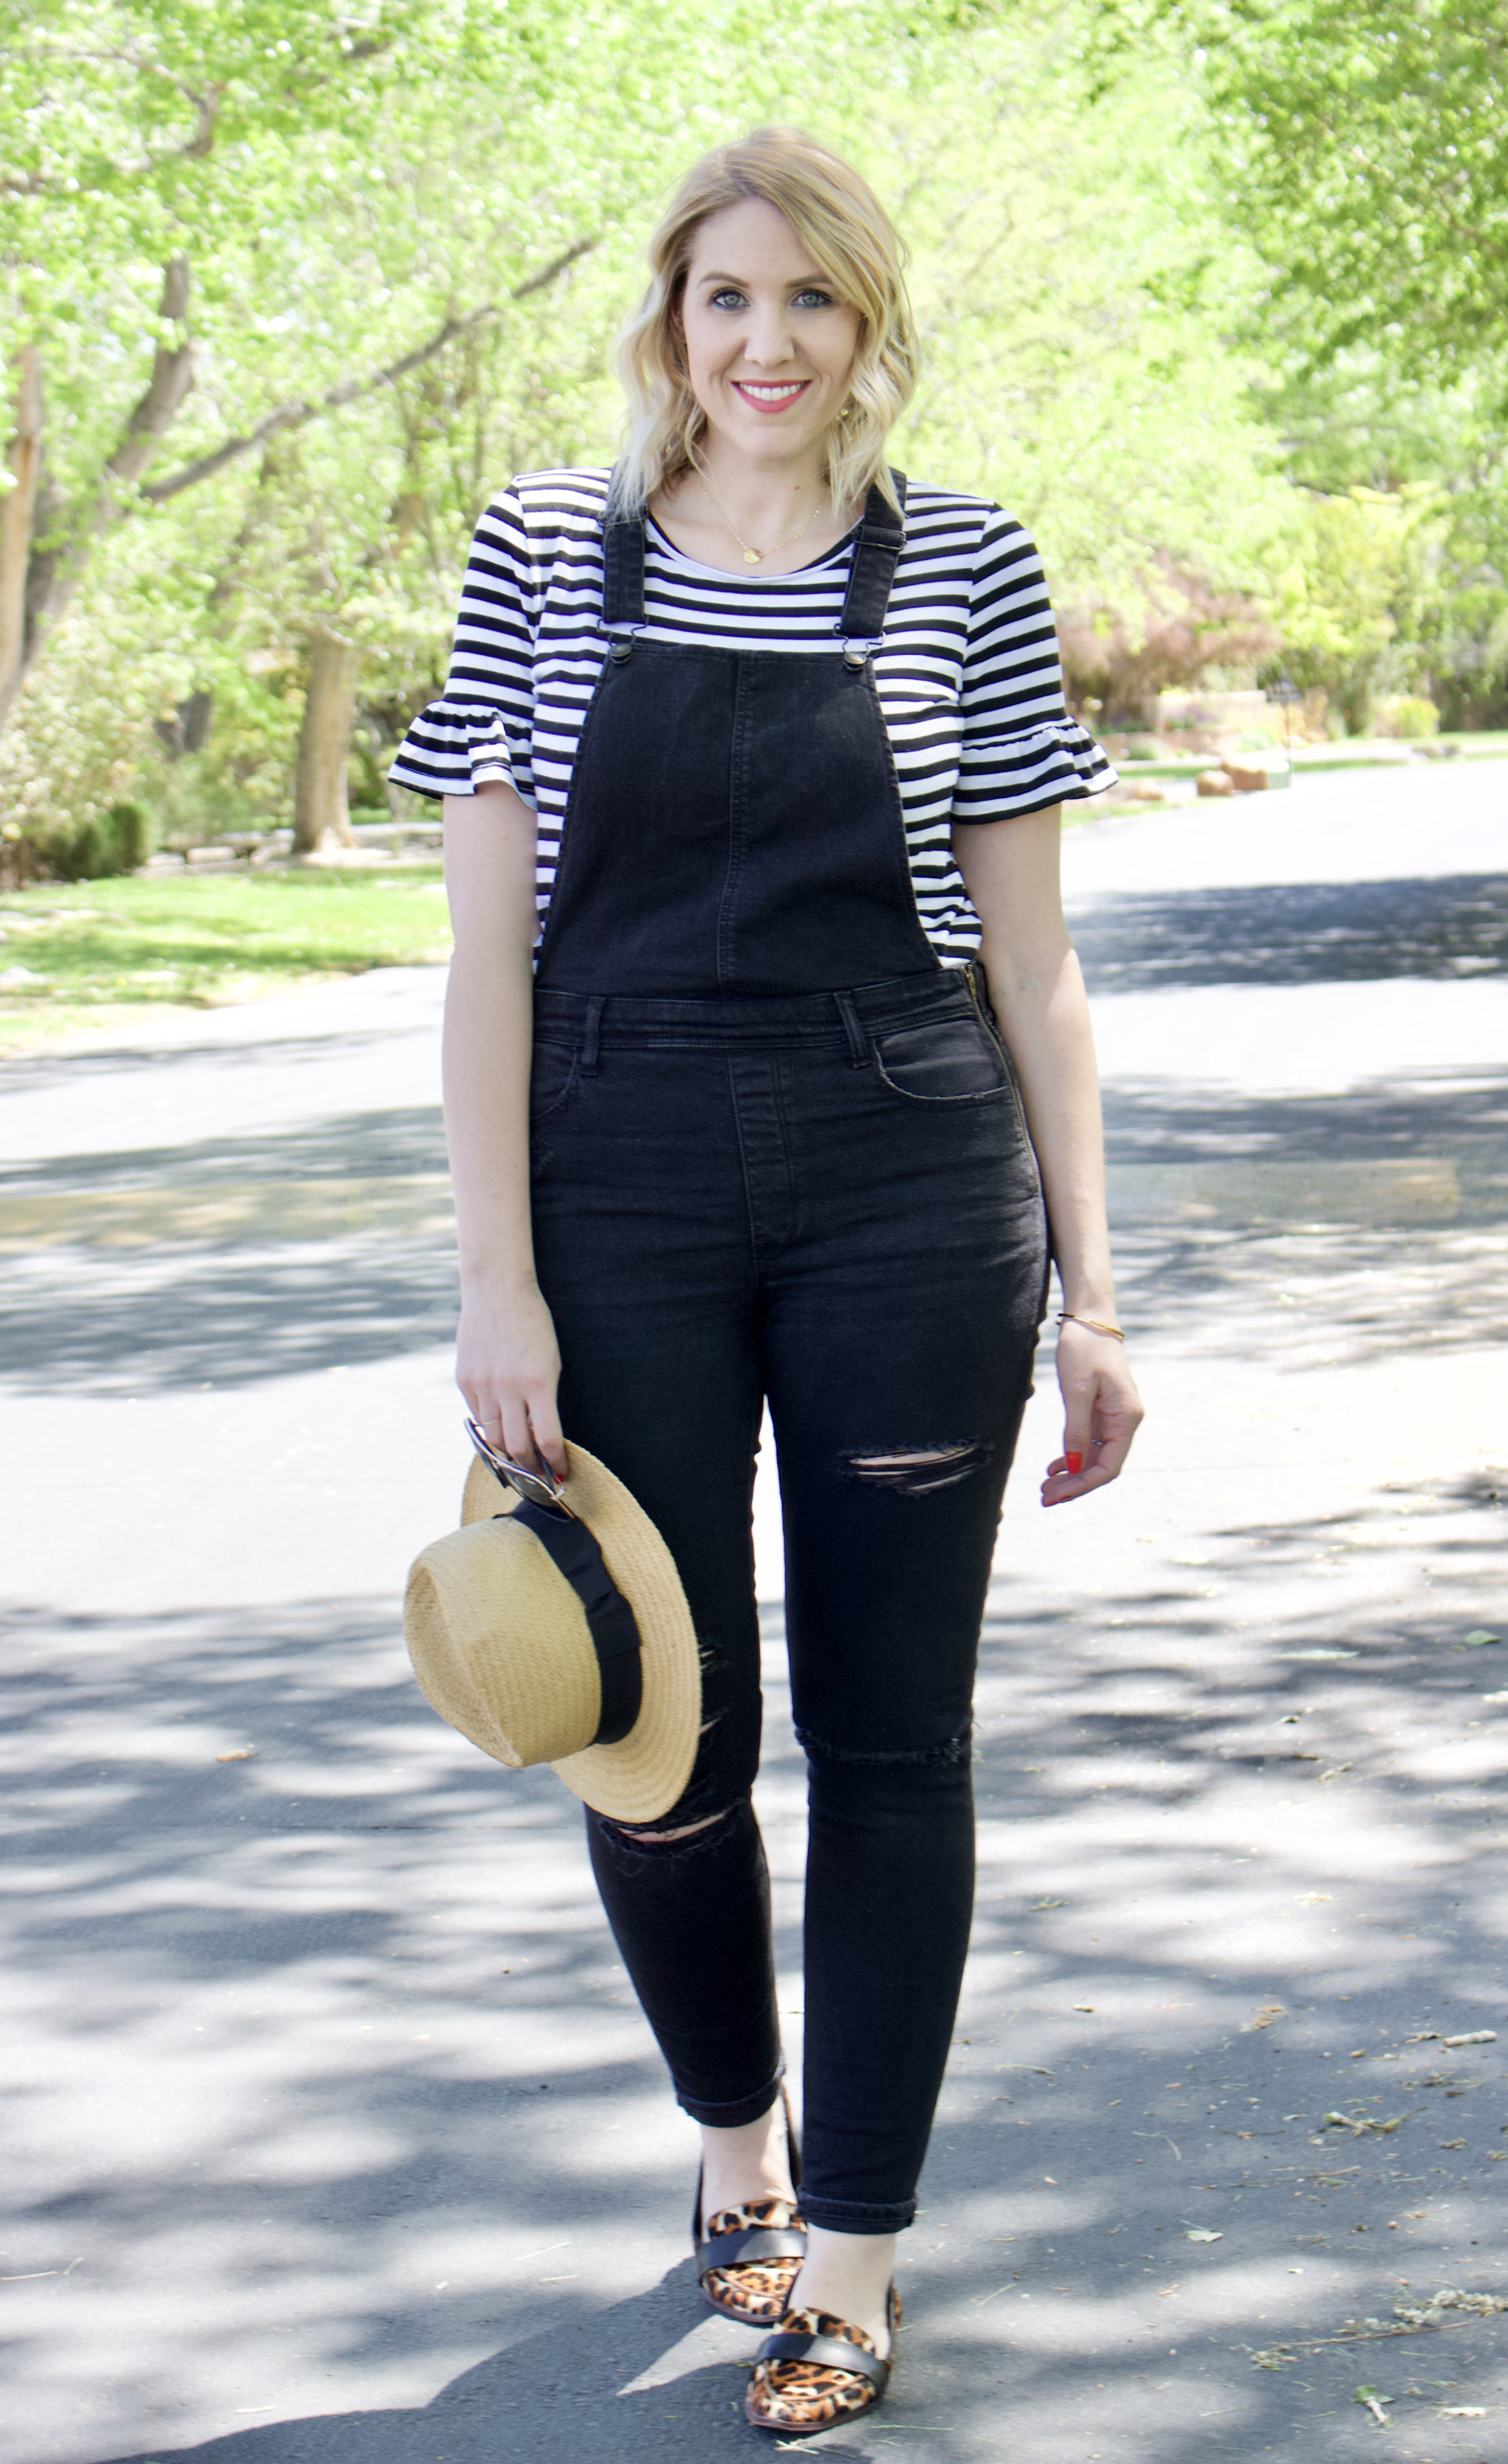 black distressed jegging overalls outfit #overallsoutfit #overalls #solesociety #momstyle